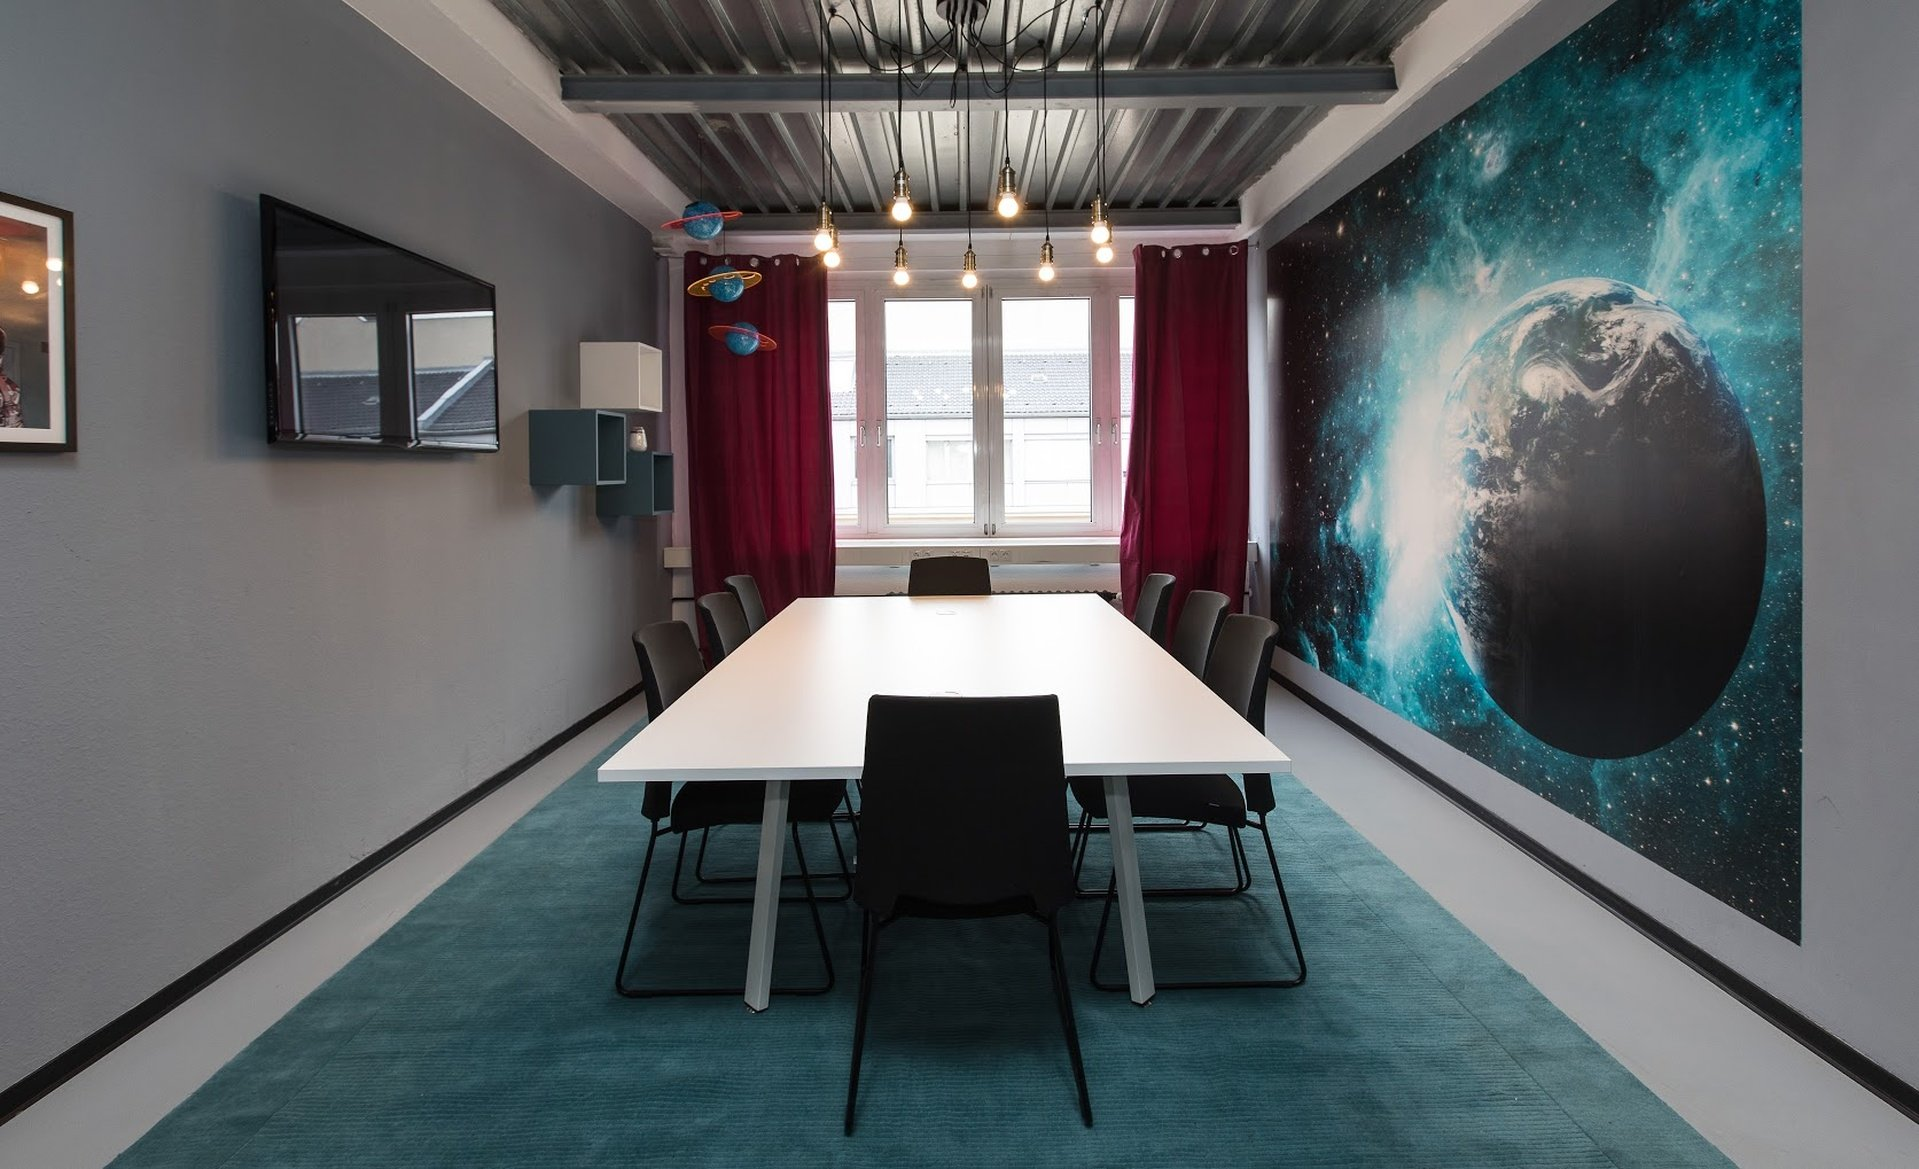 Berlin conference rooms Meeting room rent24 Mitte - Shoot for the Moon image 0